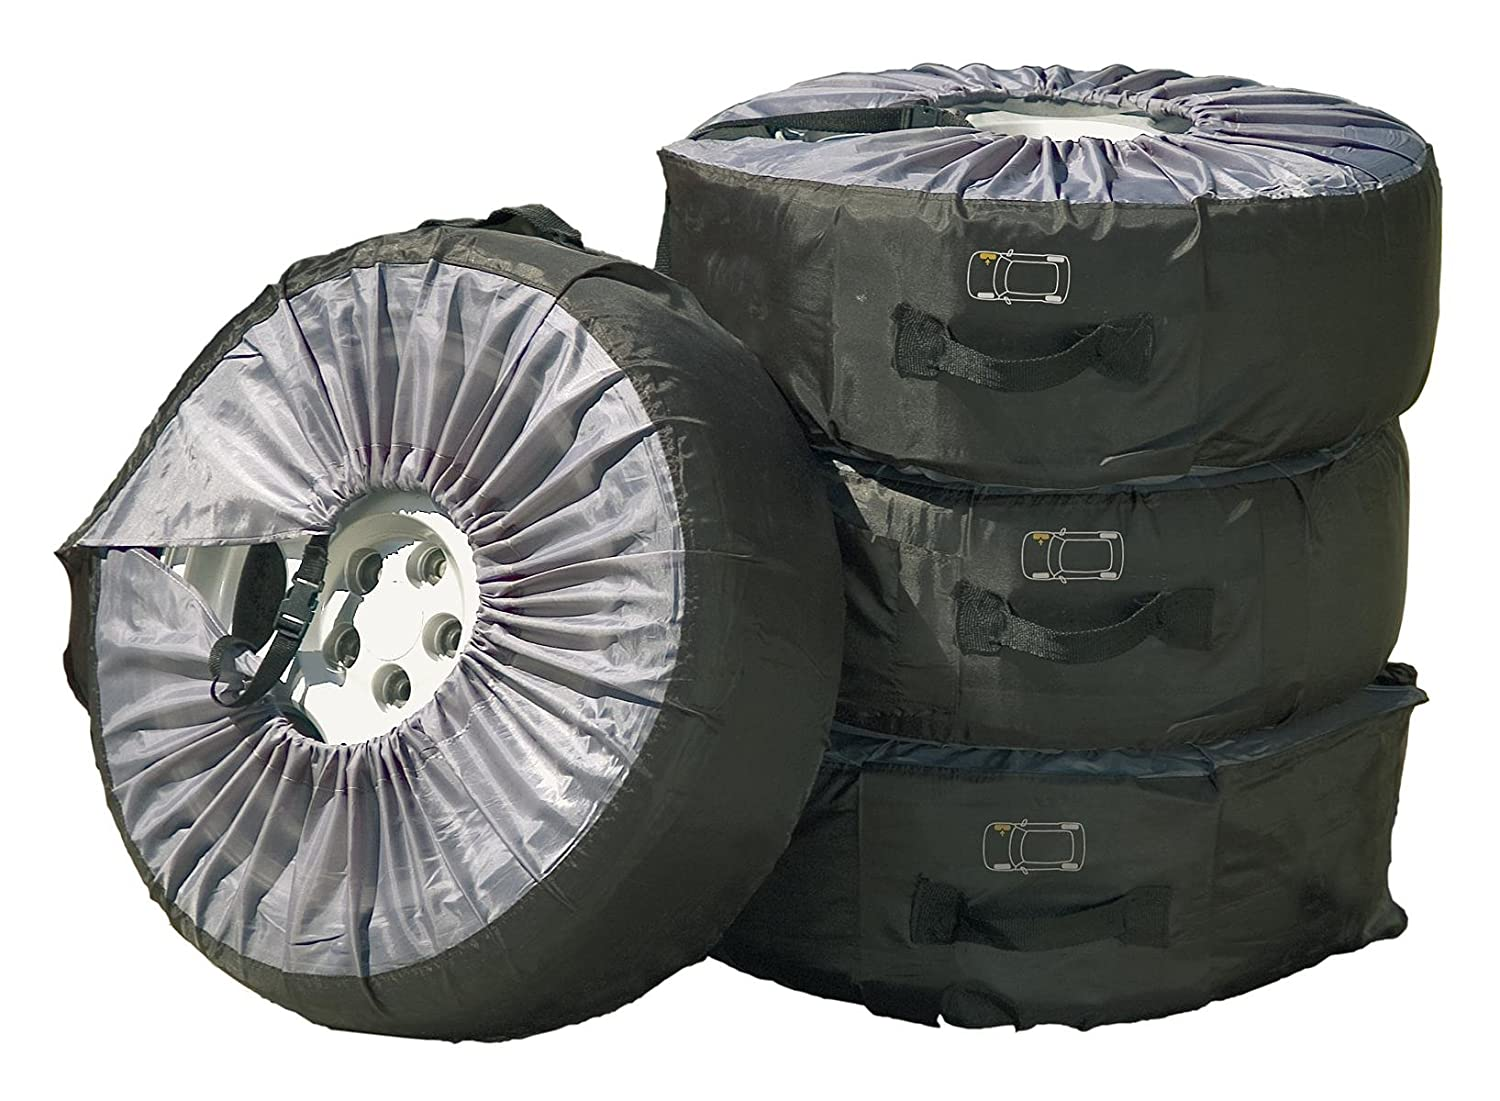 Cartrend Tire pouch, set of 4, up to 17' and 225 mm tire distance up to 17 and 225 mm tire distance 50122